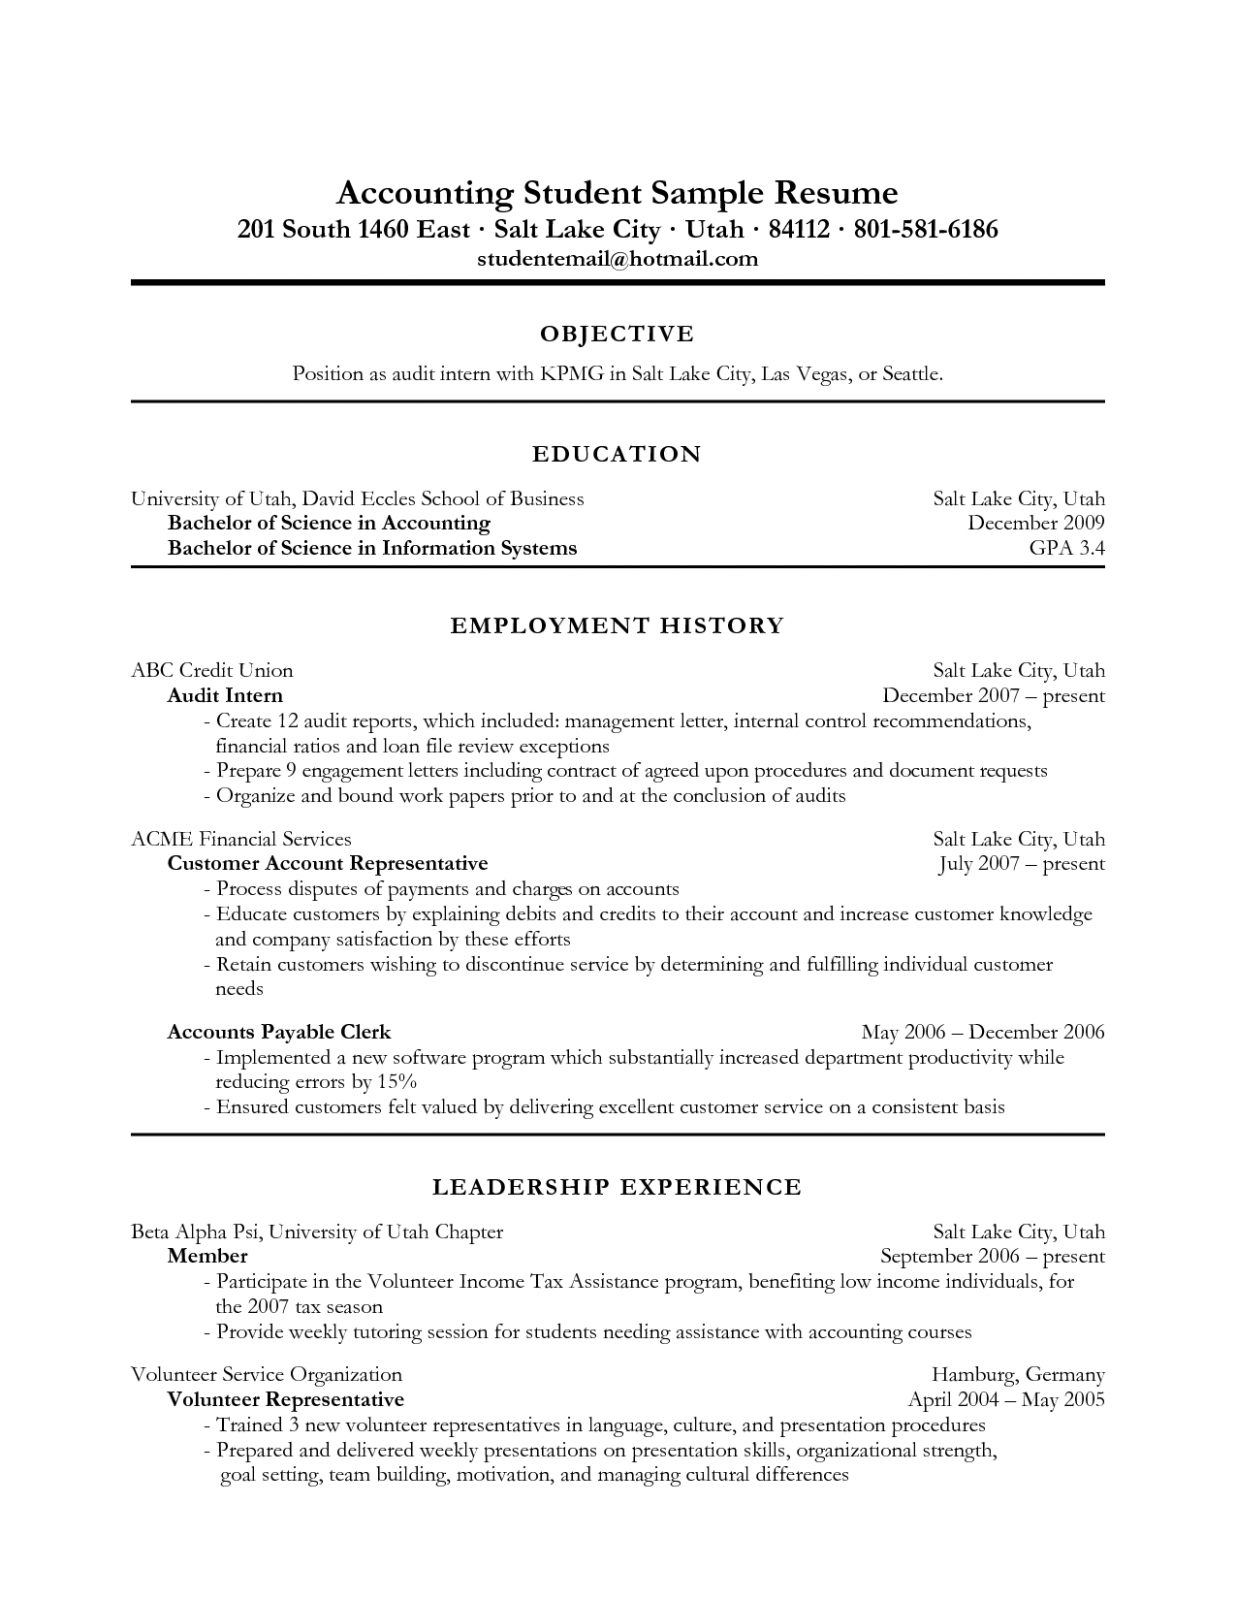 Objective for finance resume personal writer sites au